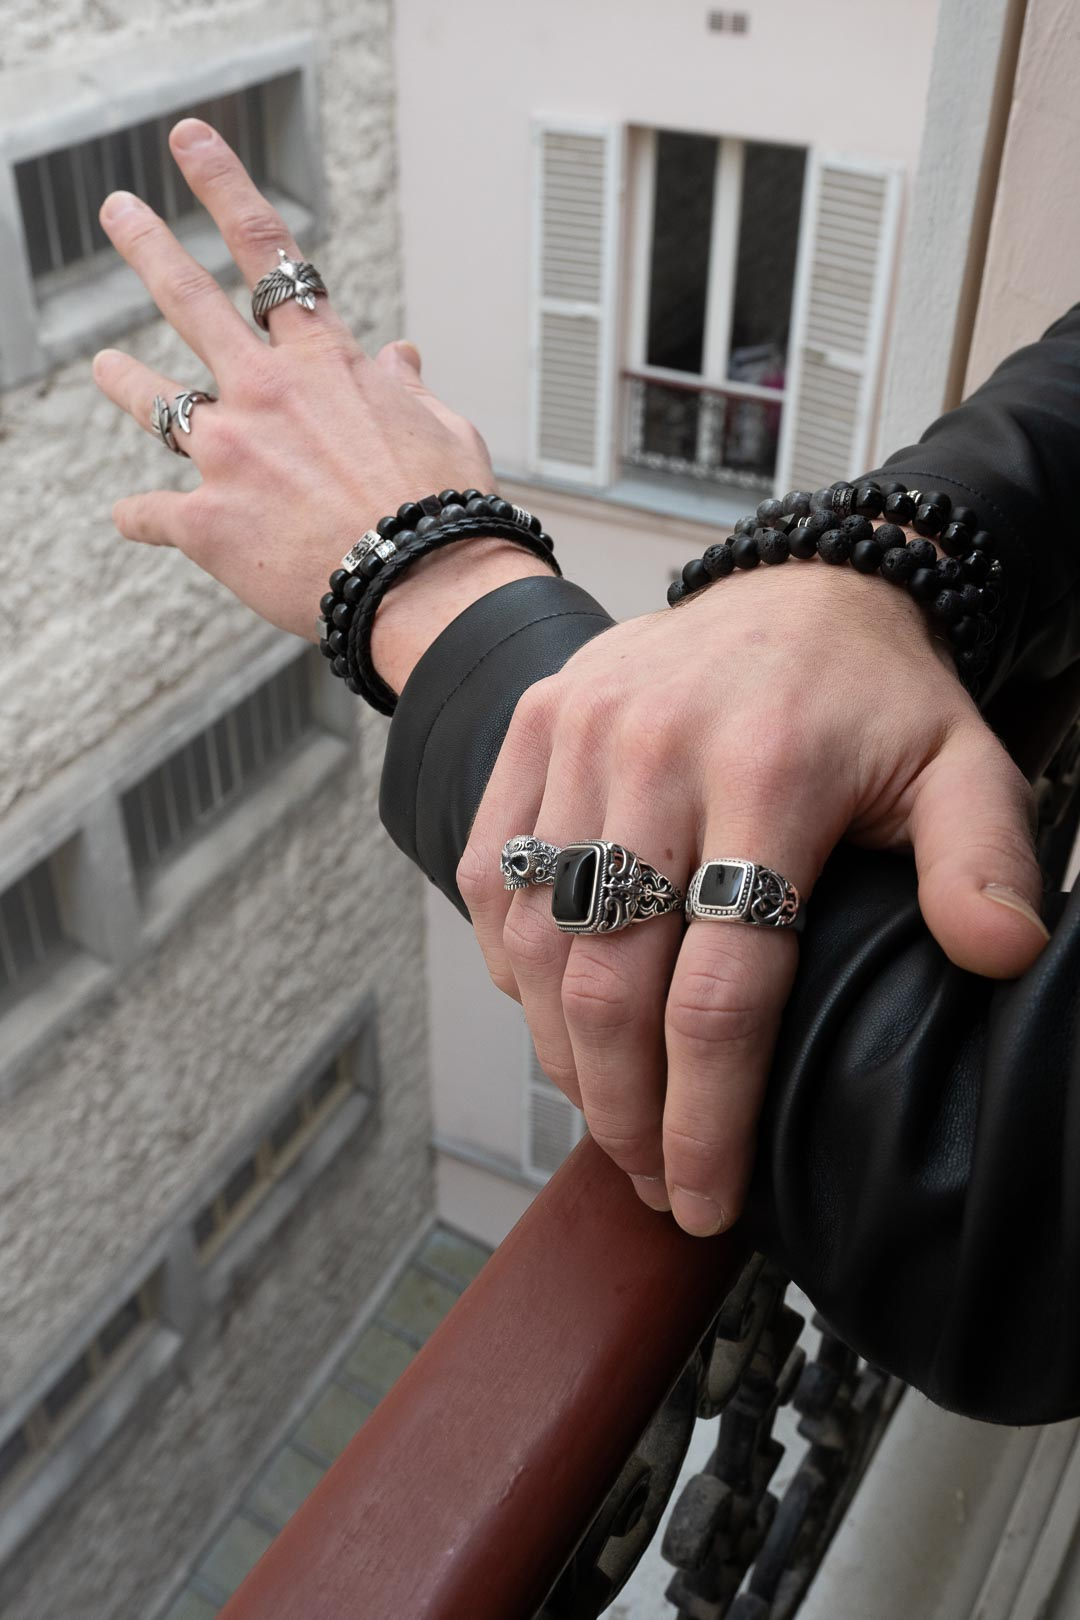 Silver rings and black bracelets